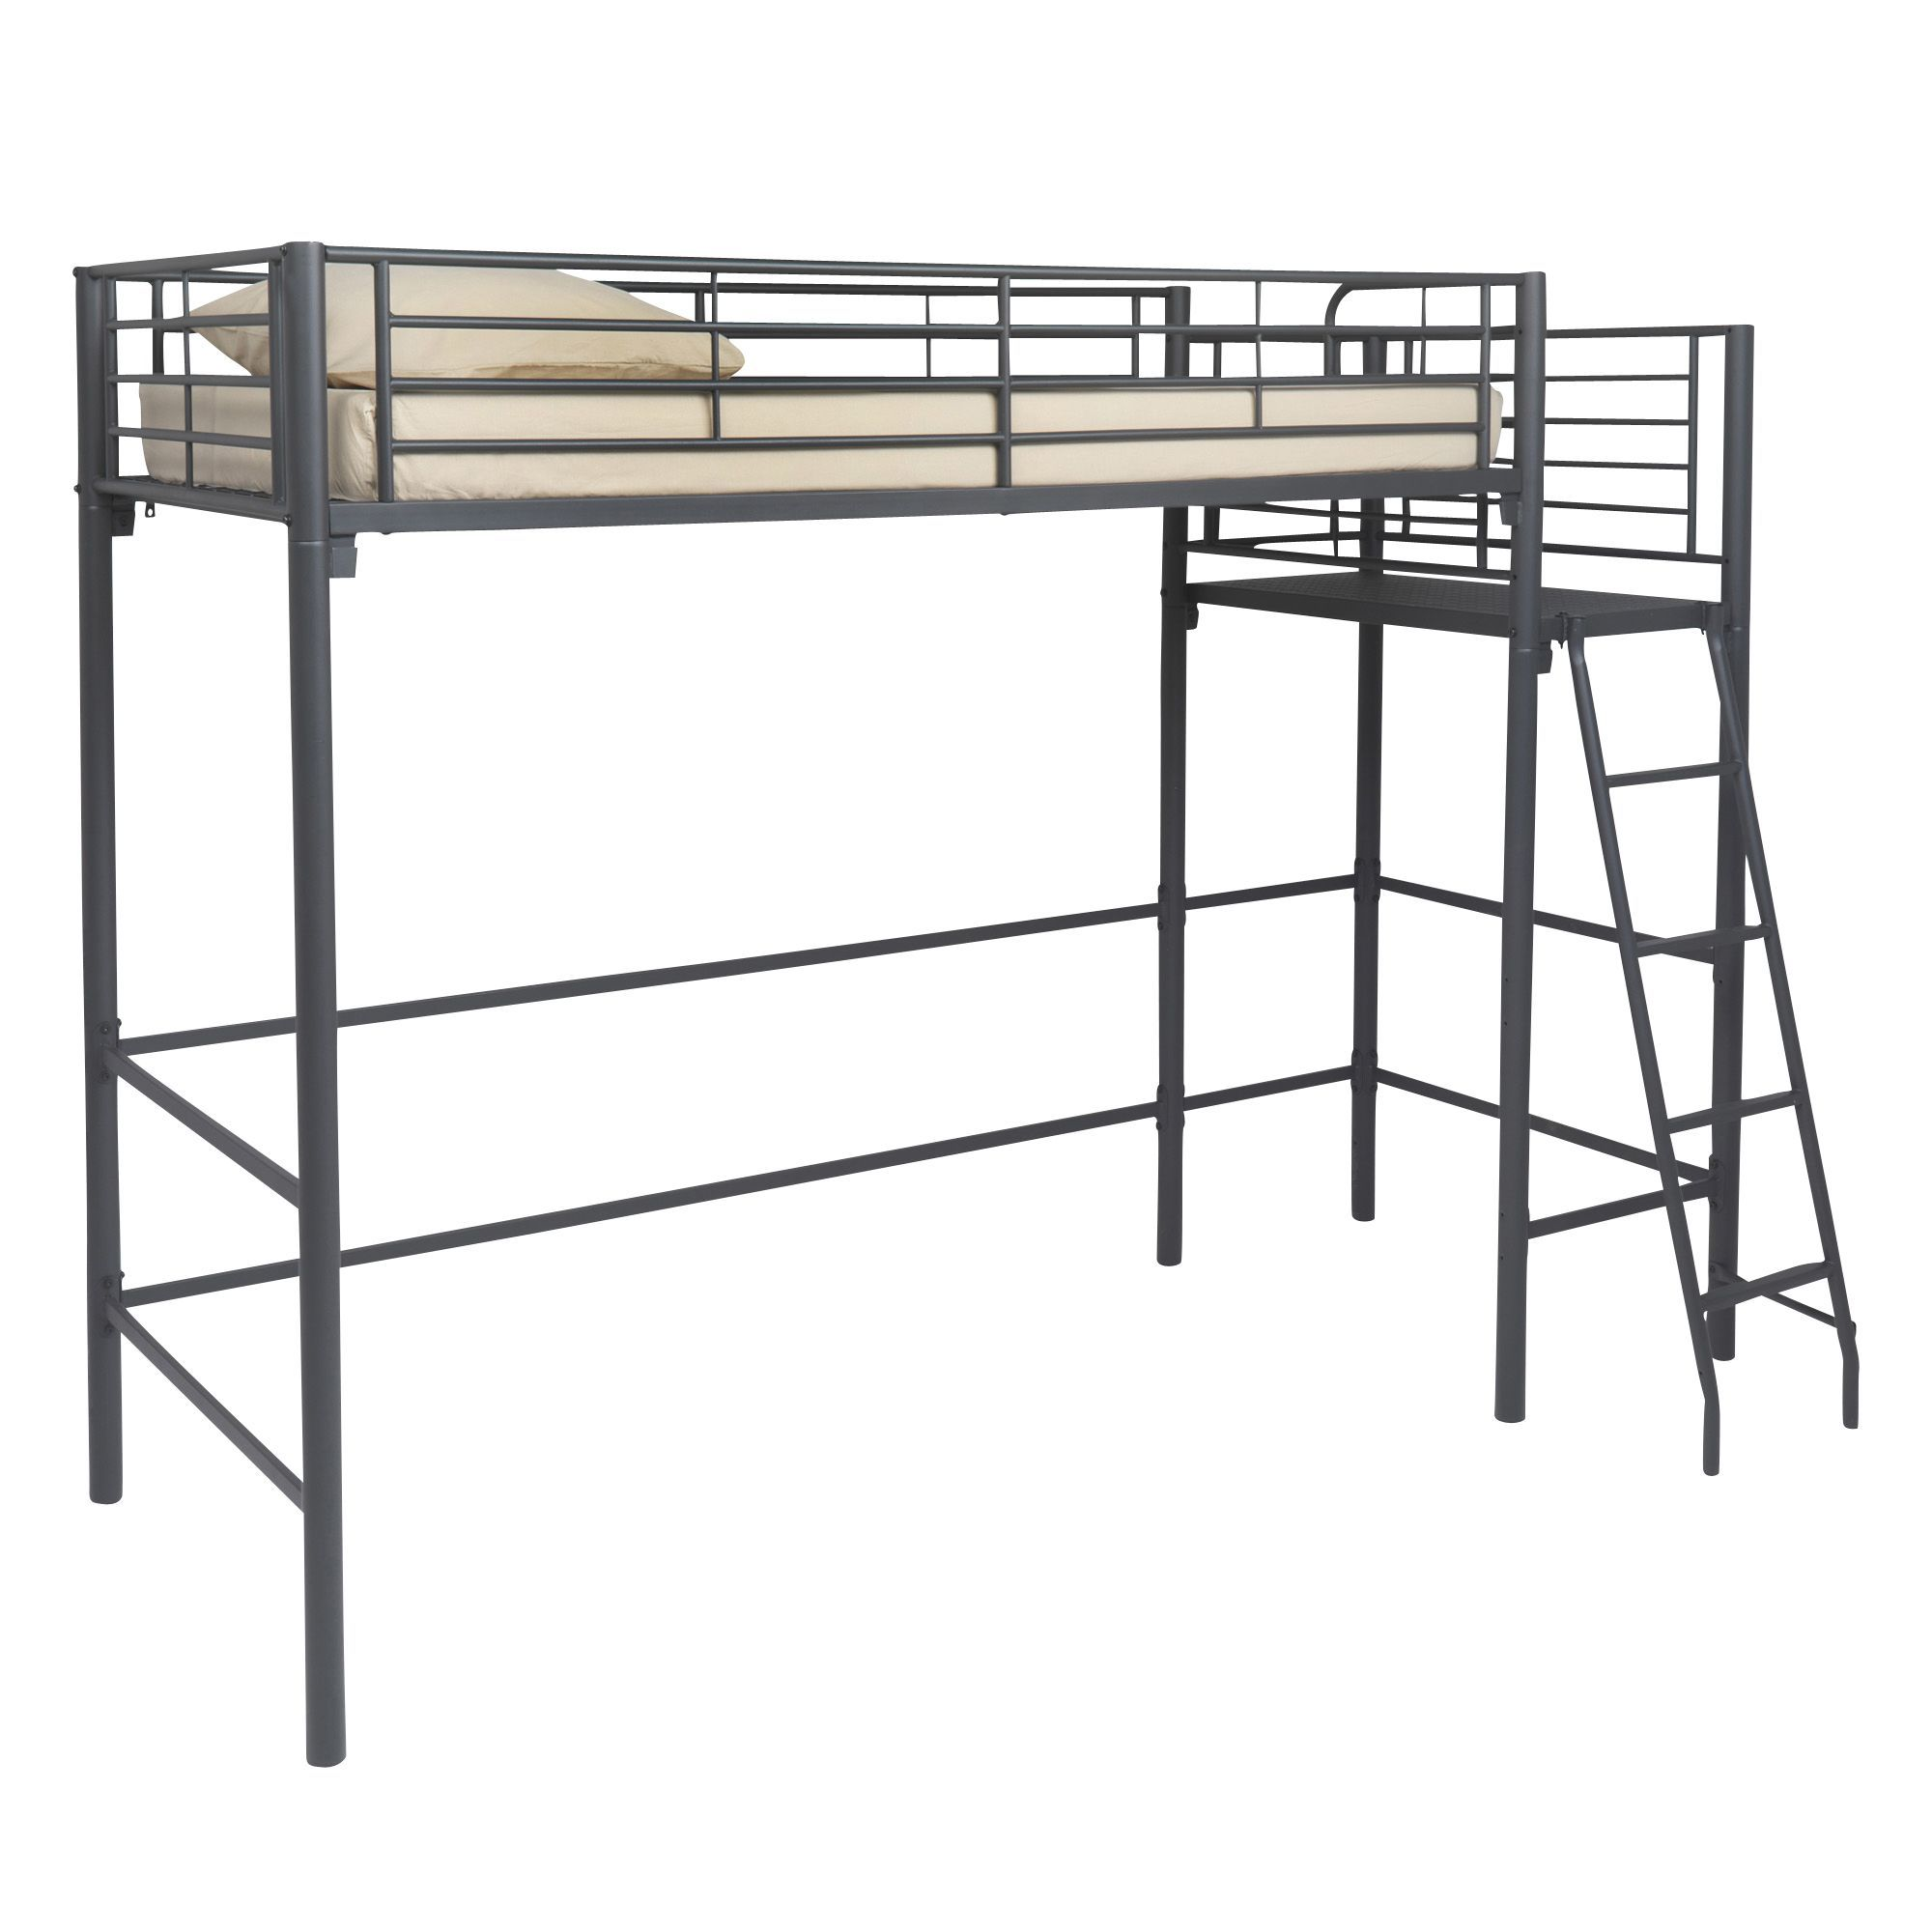 lit mezzanine avec plate forme 90x200cm gris fon alexi. Black Bedroom Furniture Sets. Home Design Ideas